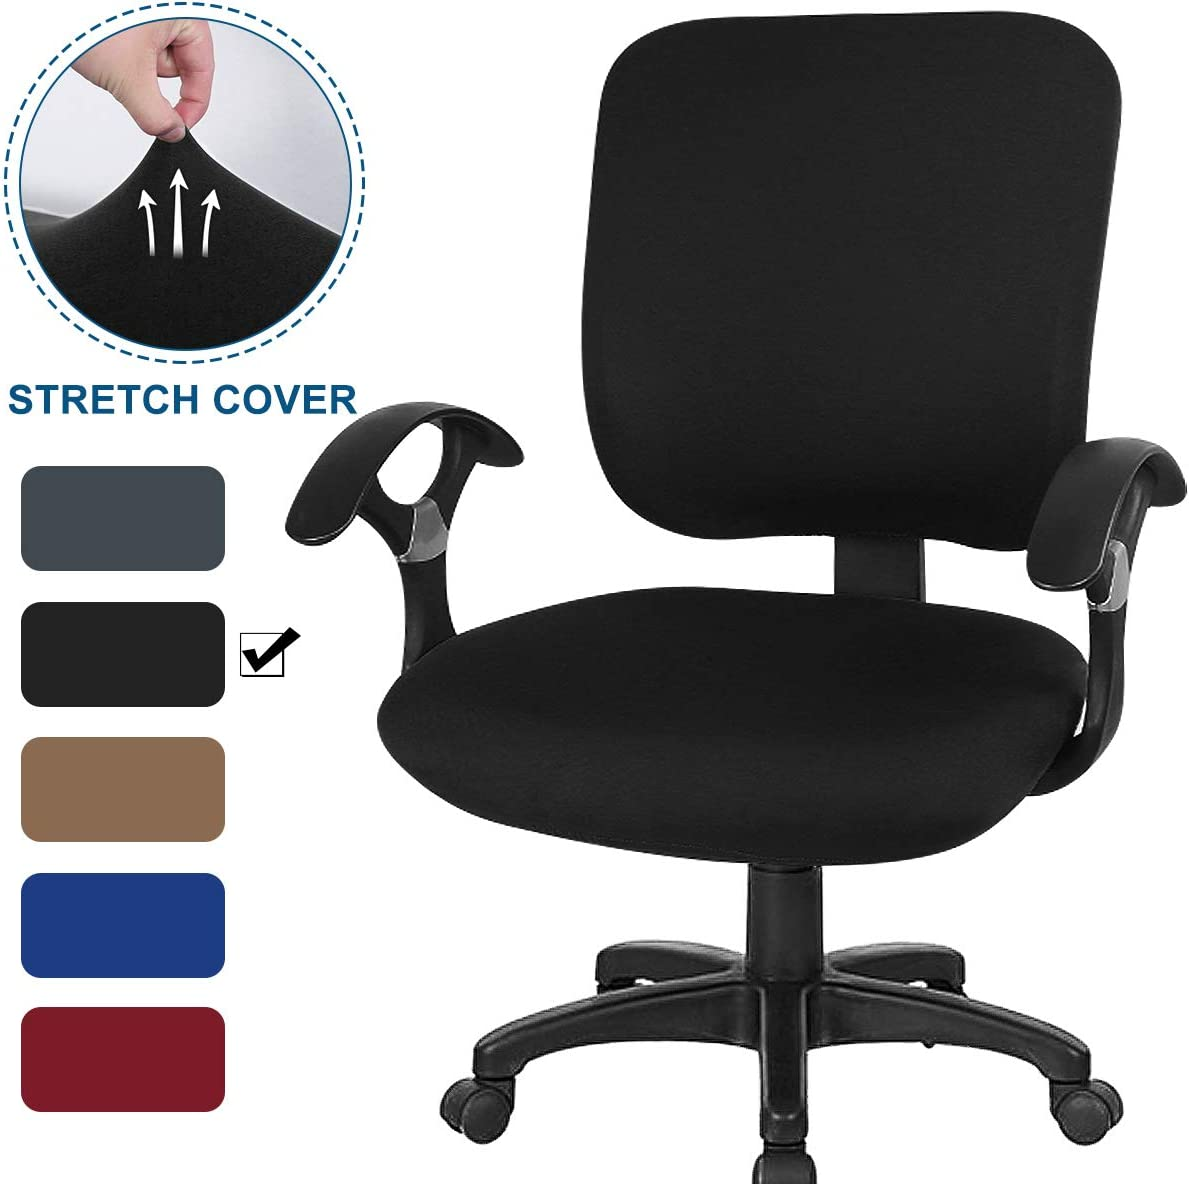 CAVEEN Office Chair Covers 2piece Stretchable Computer Office Chair Cover Universal Chair Seat Covers Stretch Rotating Chair Slipcovers Washable Spandex Desk Chair Cover Protectors,Black